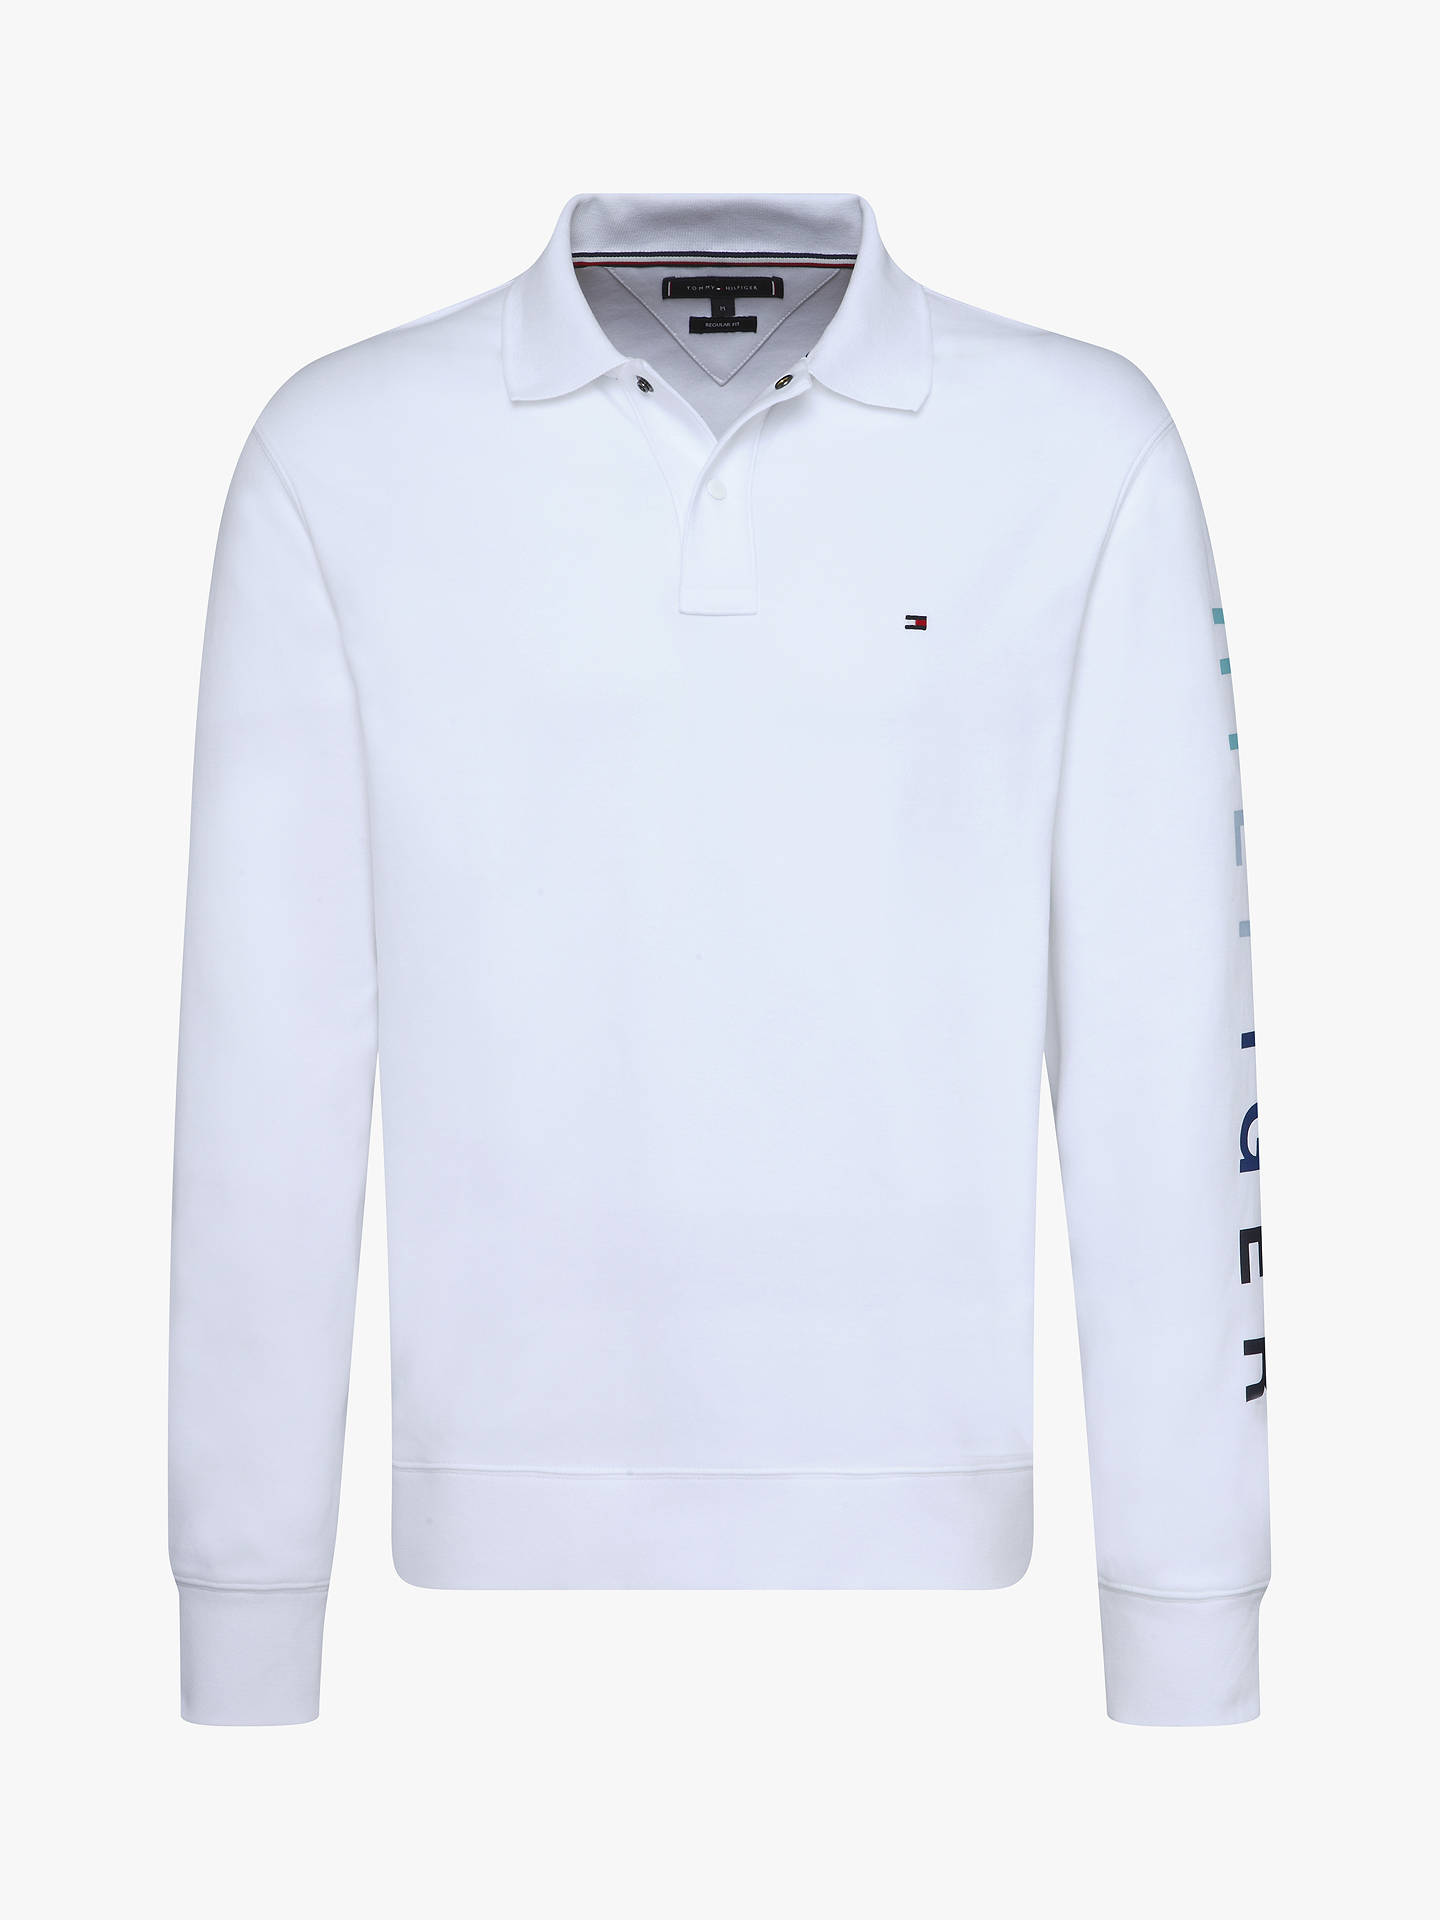 7cb88e31 Buy Tommy Hilfiger Long Sleeve Logo Polo Shirt, Bright White, S Online at  johnlewis ...